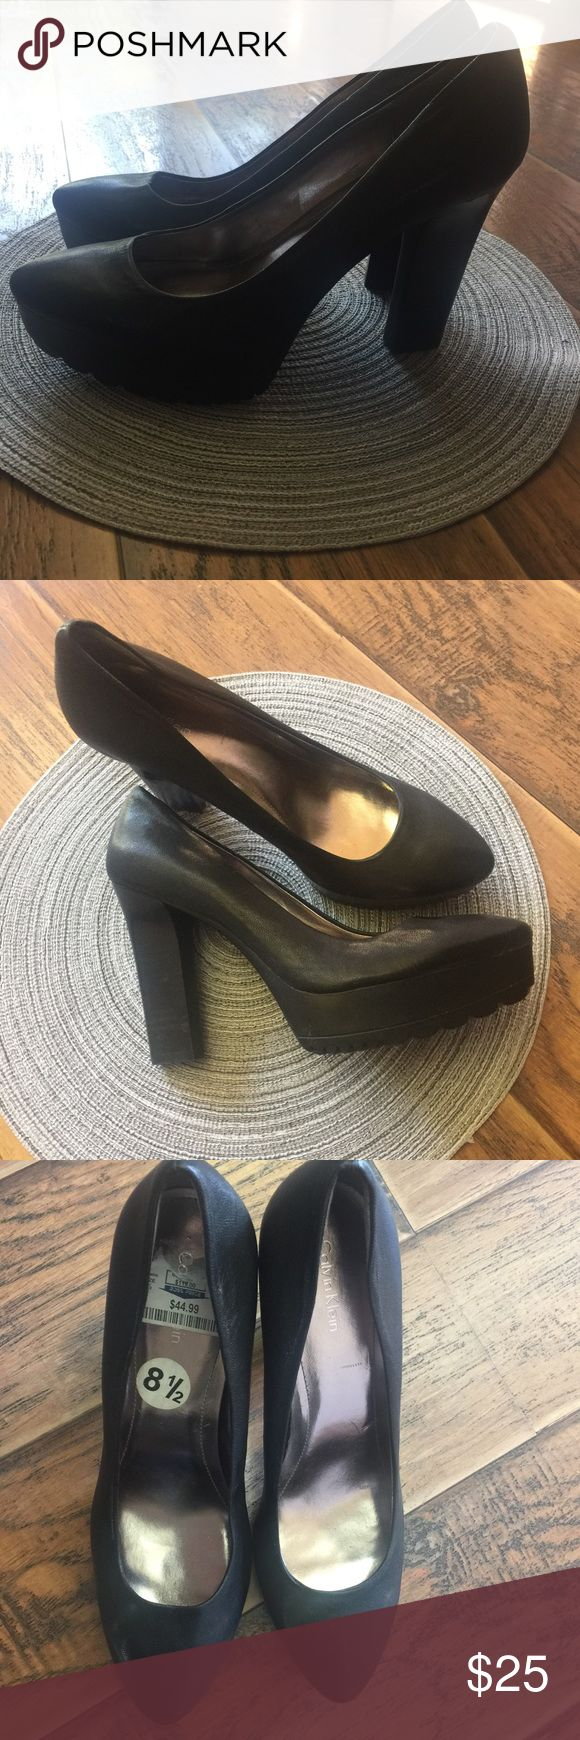 New high heels shoes by Calvin Klein Black high heels shoes by Calvin Klein Calvin Klein Shoes Heels